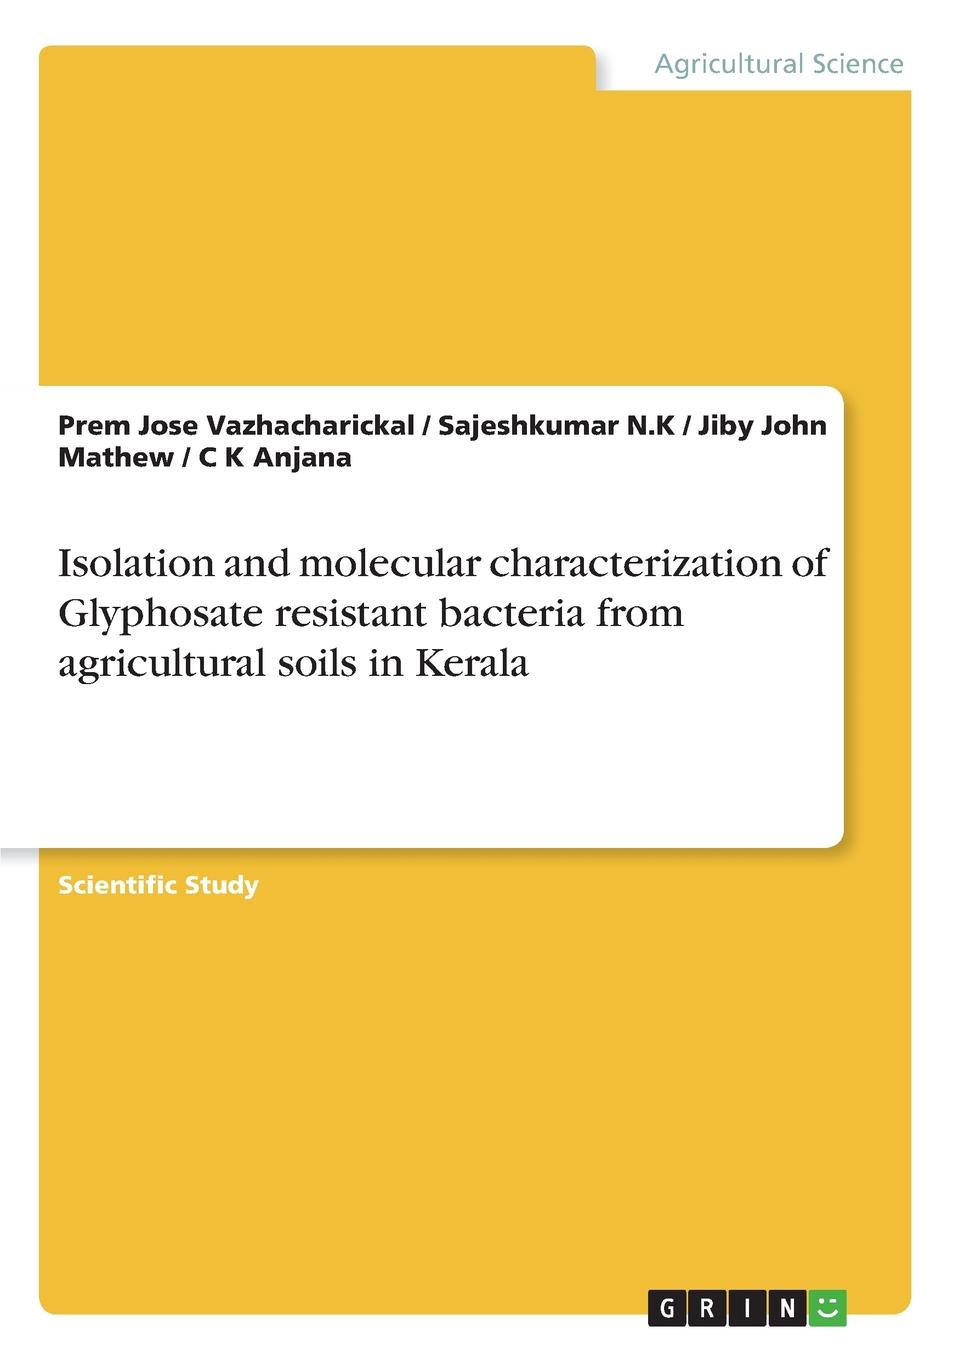 Jiby John Mathew, Prem Jose Vazhacharickal, Sajeshkumar N.K Isolation and molecular characterization of Glyphosate resistant bacteria from agricultural soils in Kerala jiby john mathew prem jose vazhacharickal sajeshkumar n k the honey apple and its phytochemical analysis